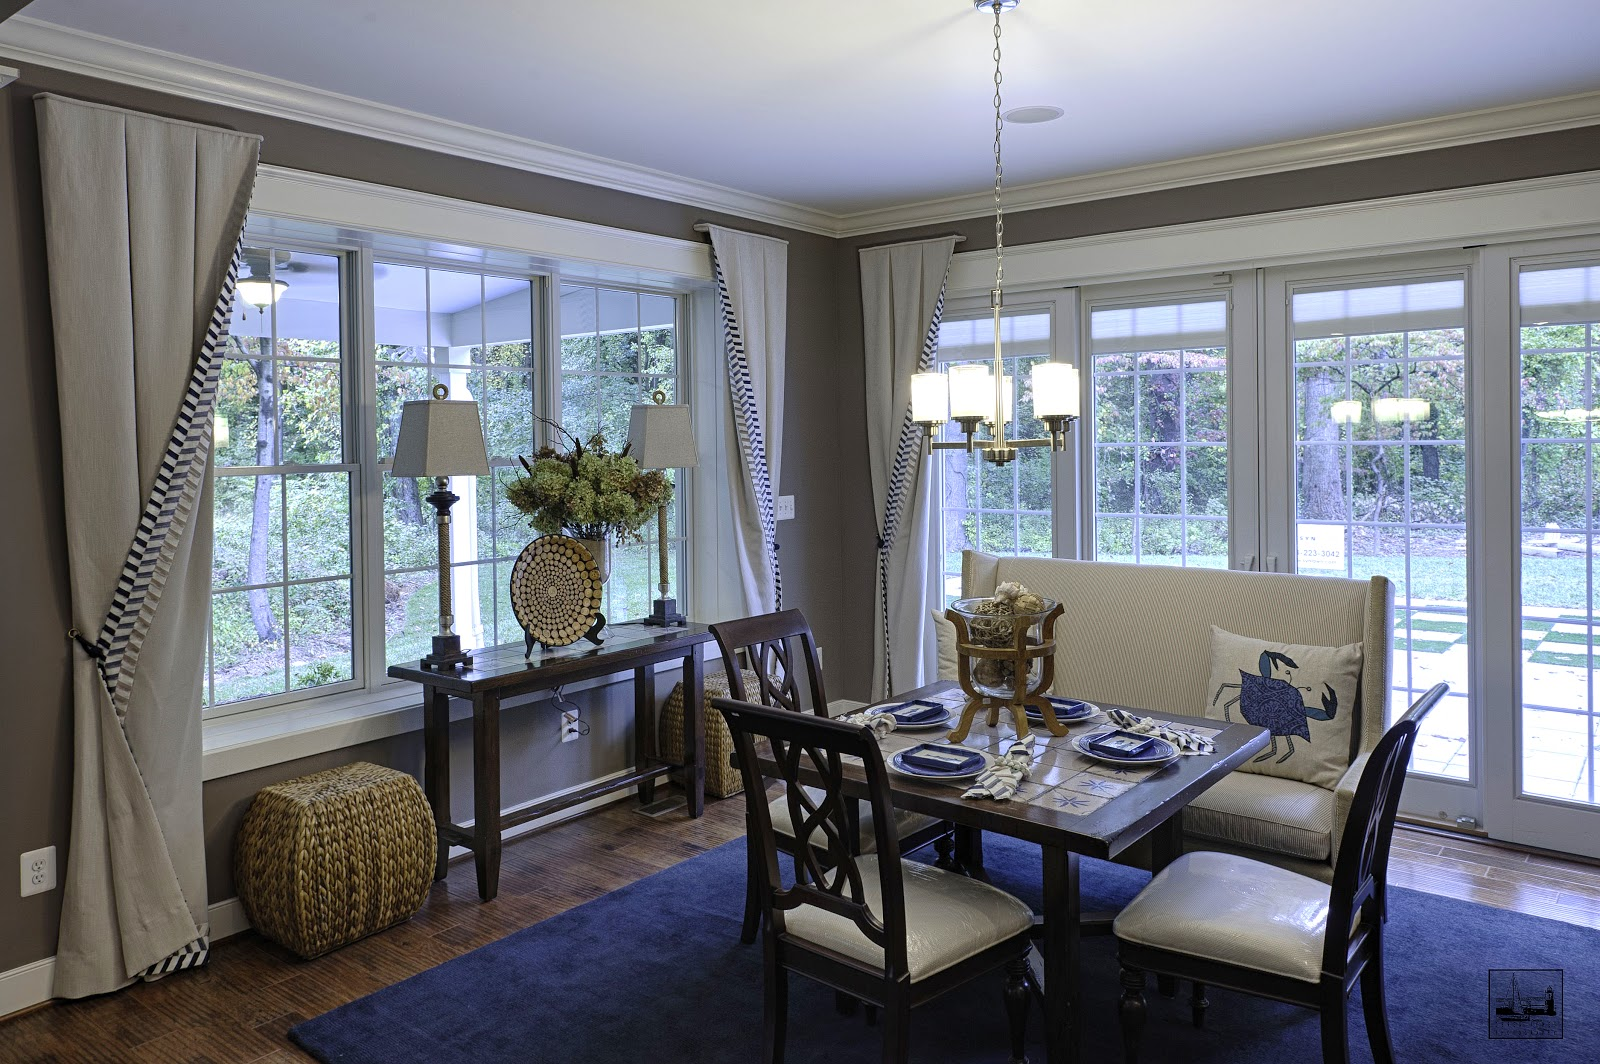 Kitchen Designers In Maryland Details Of Design Maryland Green Show Home Is Extended